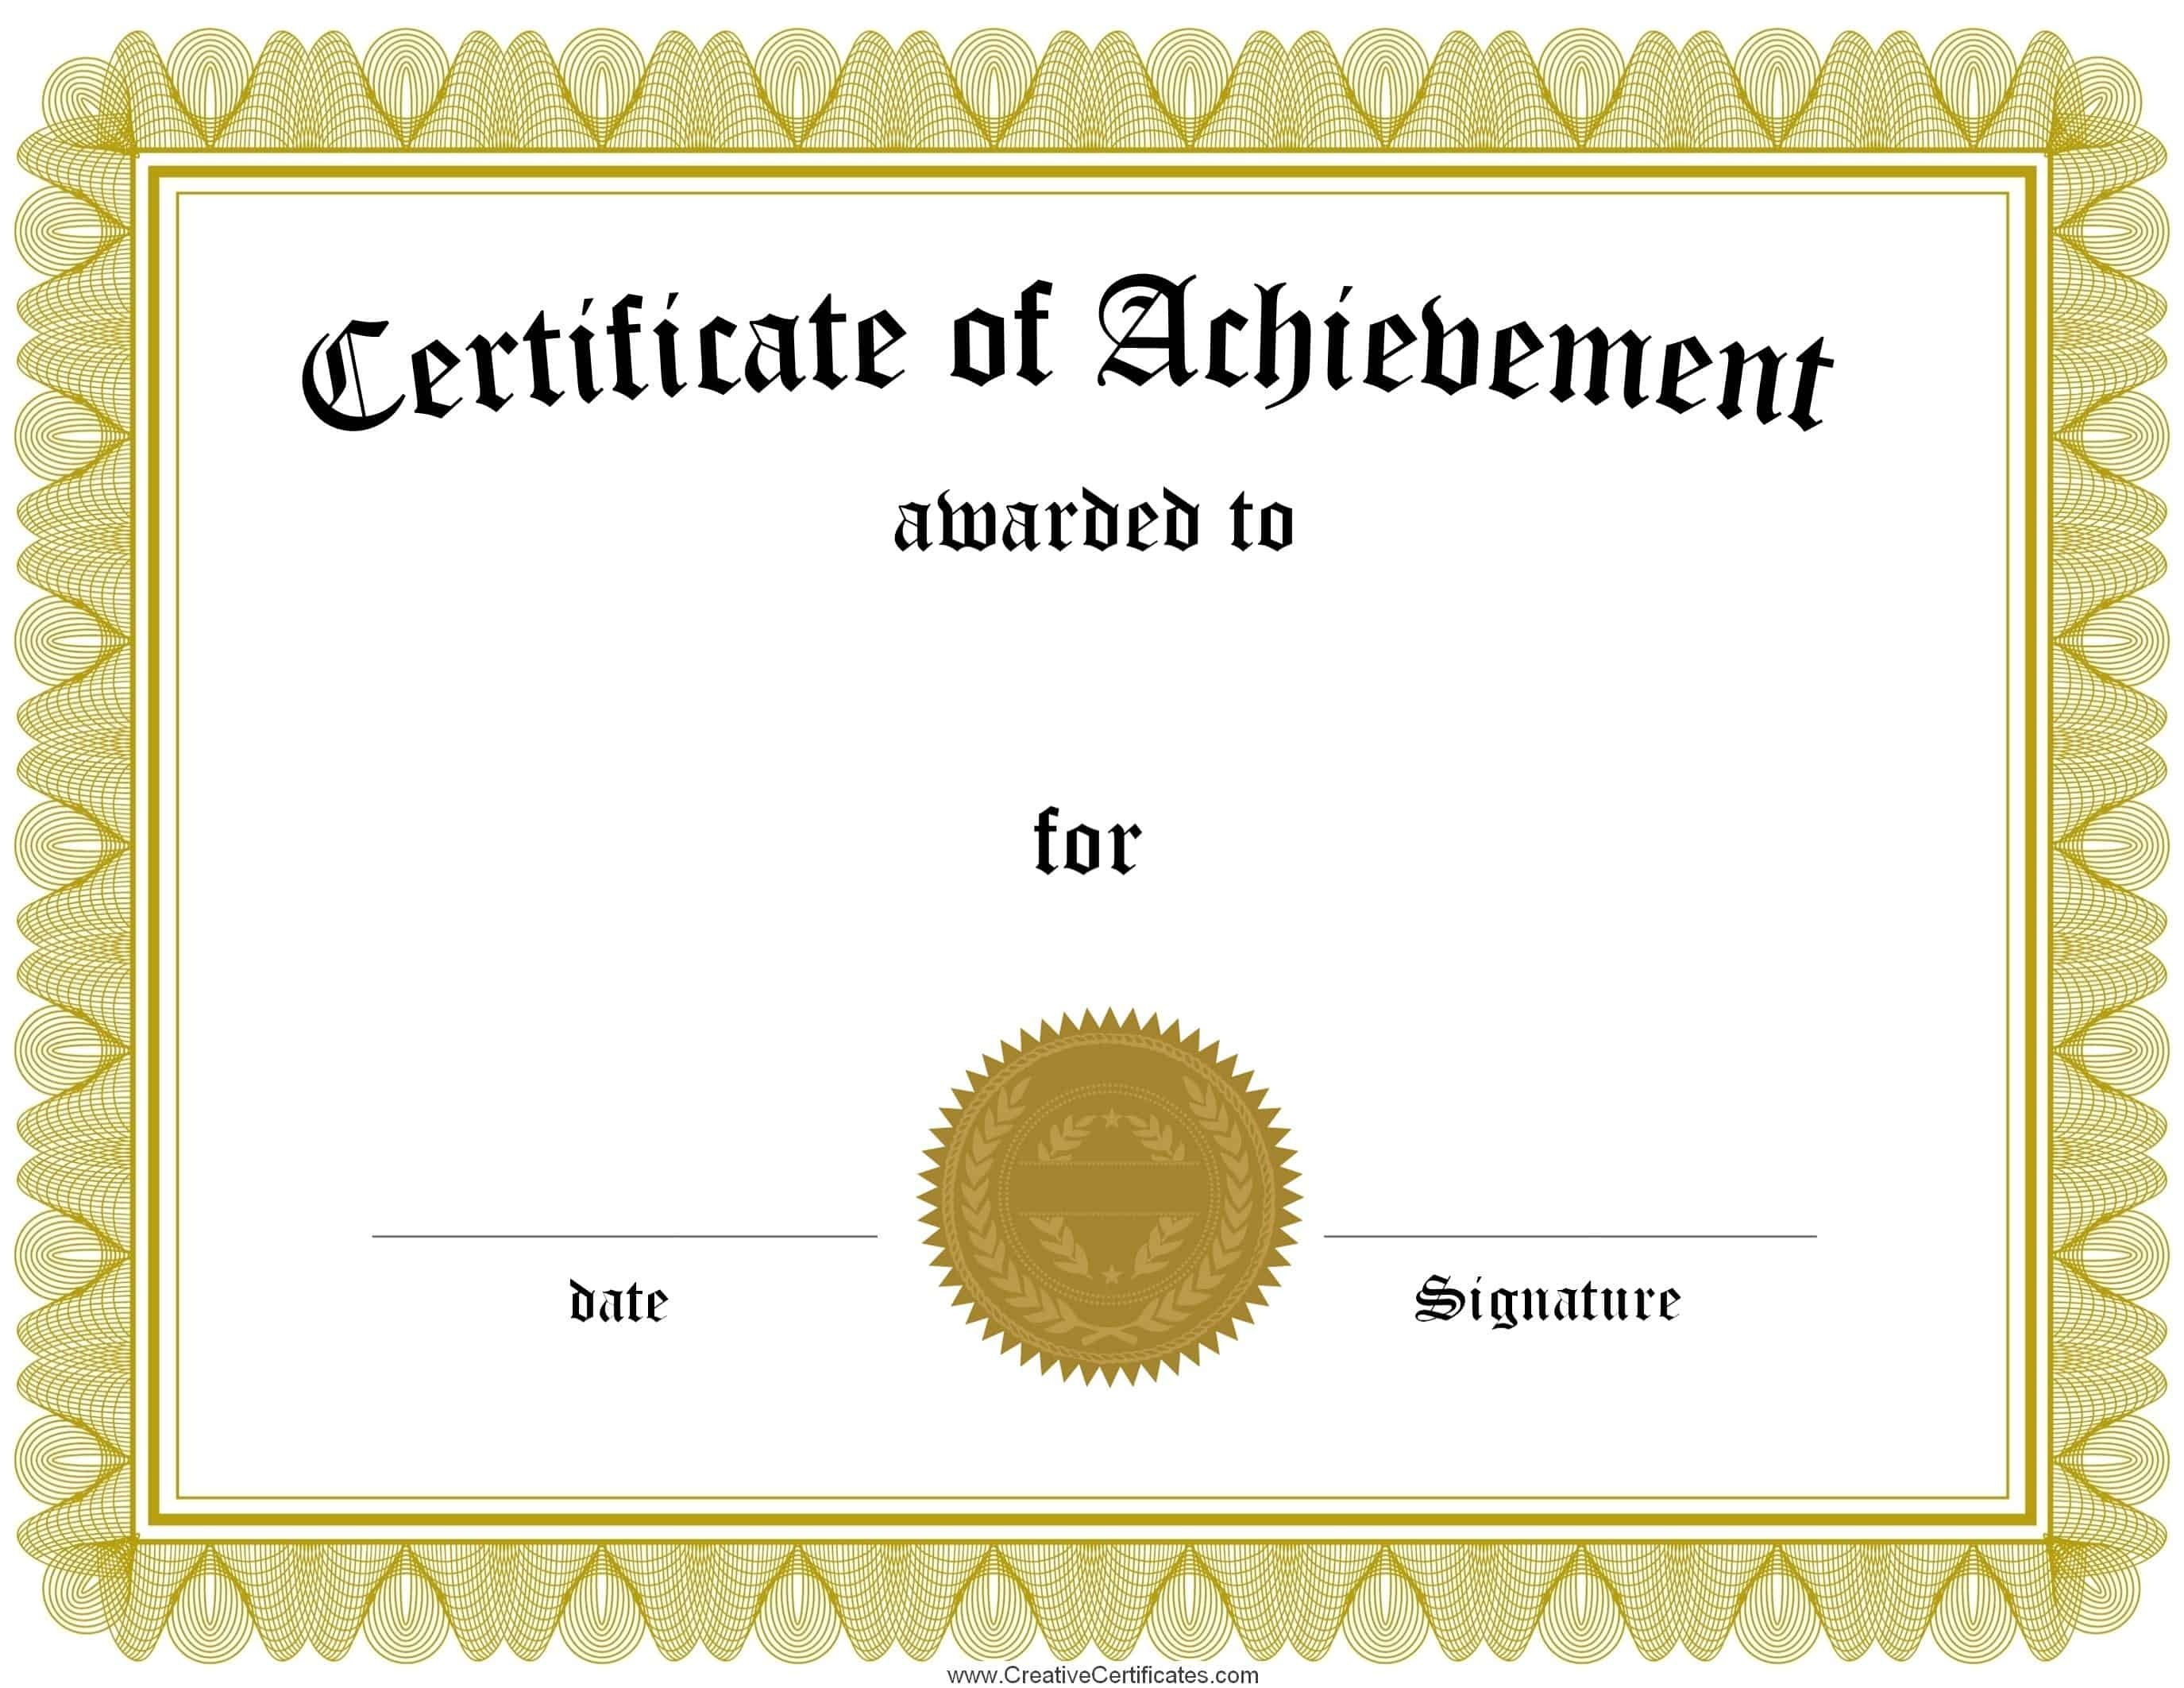 Free Customizable Certificate Of Achievement - Free Printable Certificates And Awards